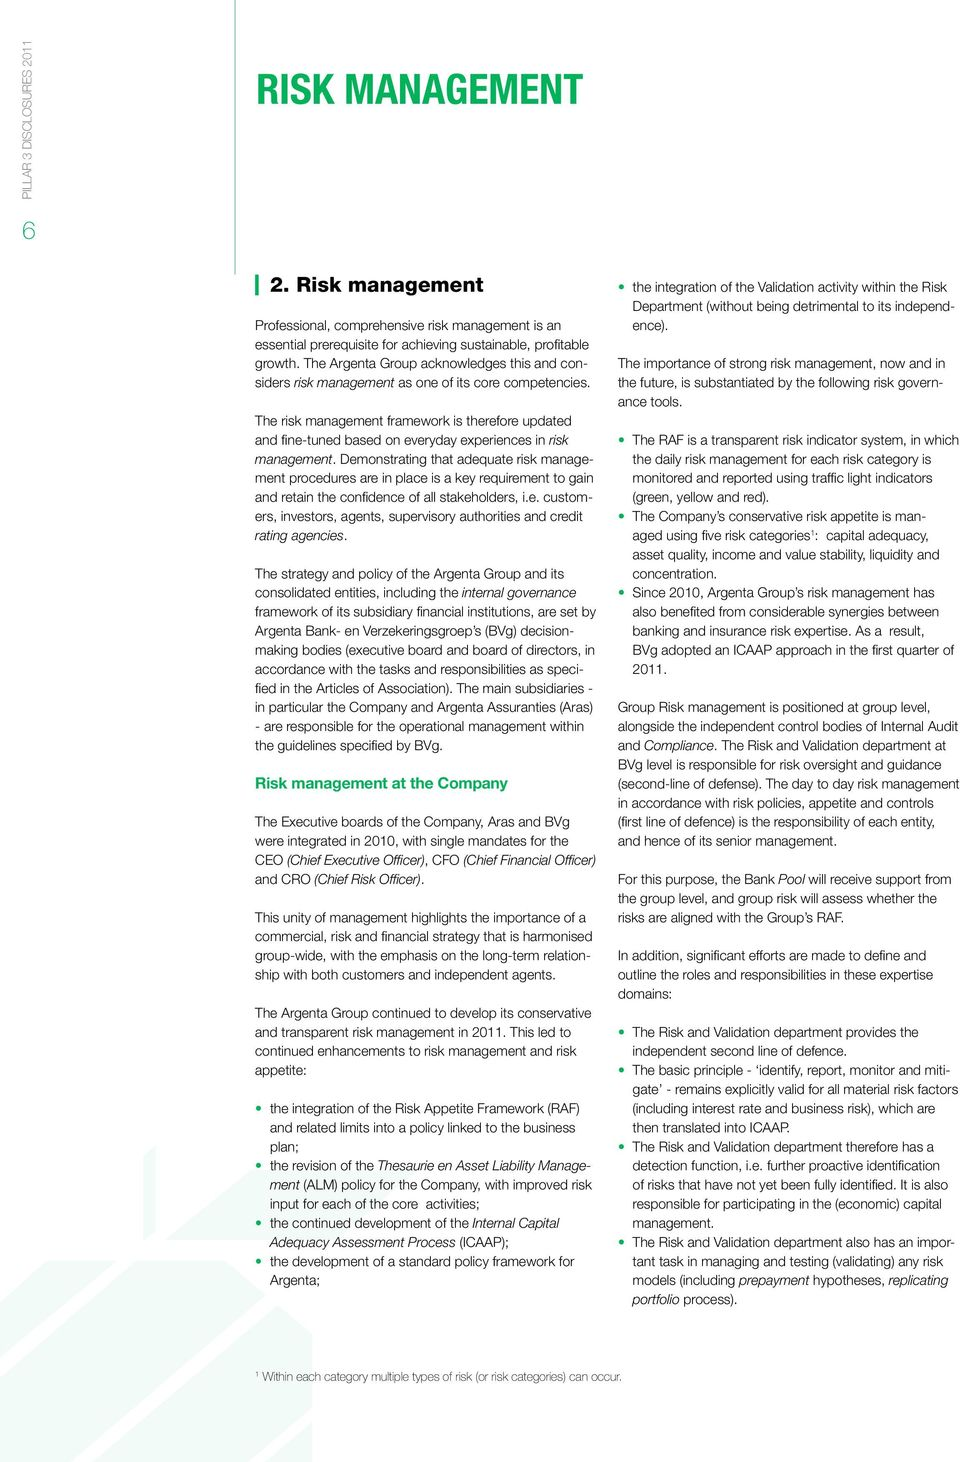 The risk management framework is therefore updated and fine-tuned based on everyday experiences in risk management.